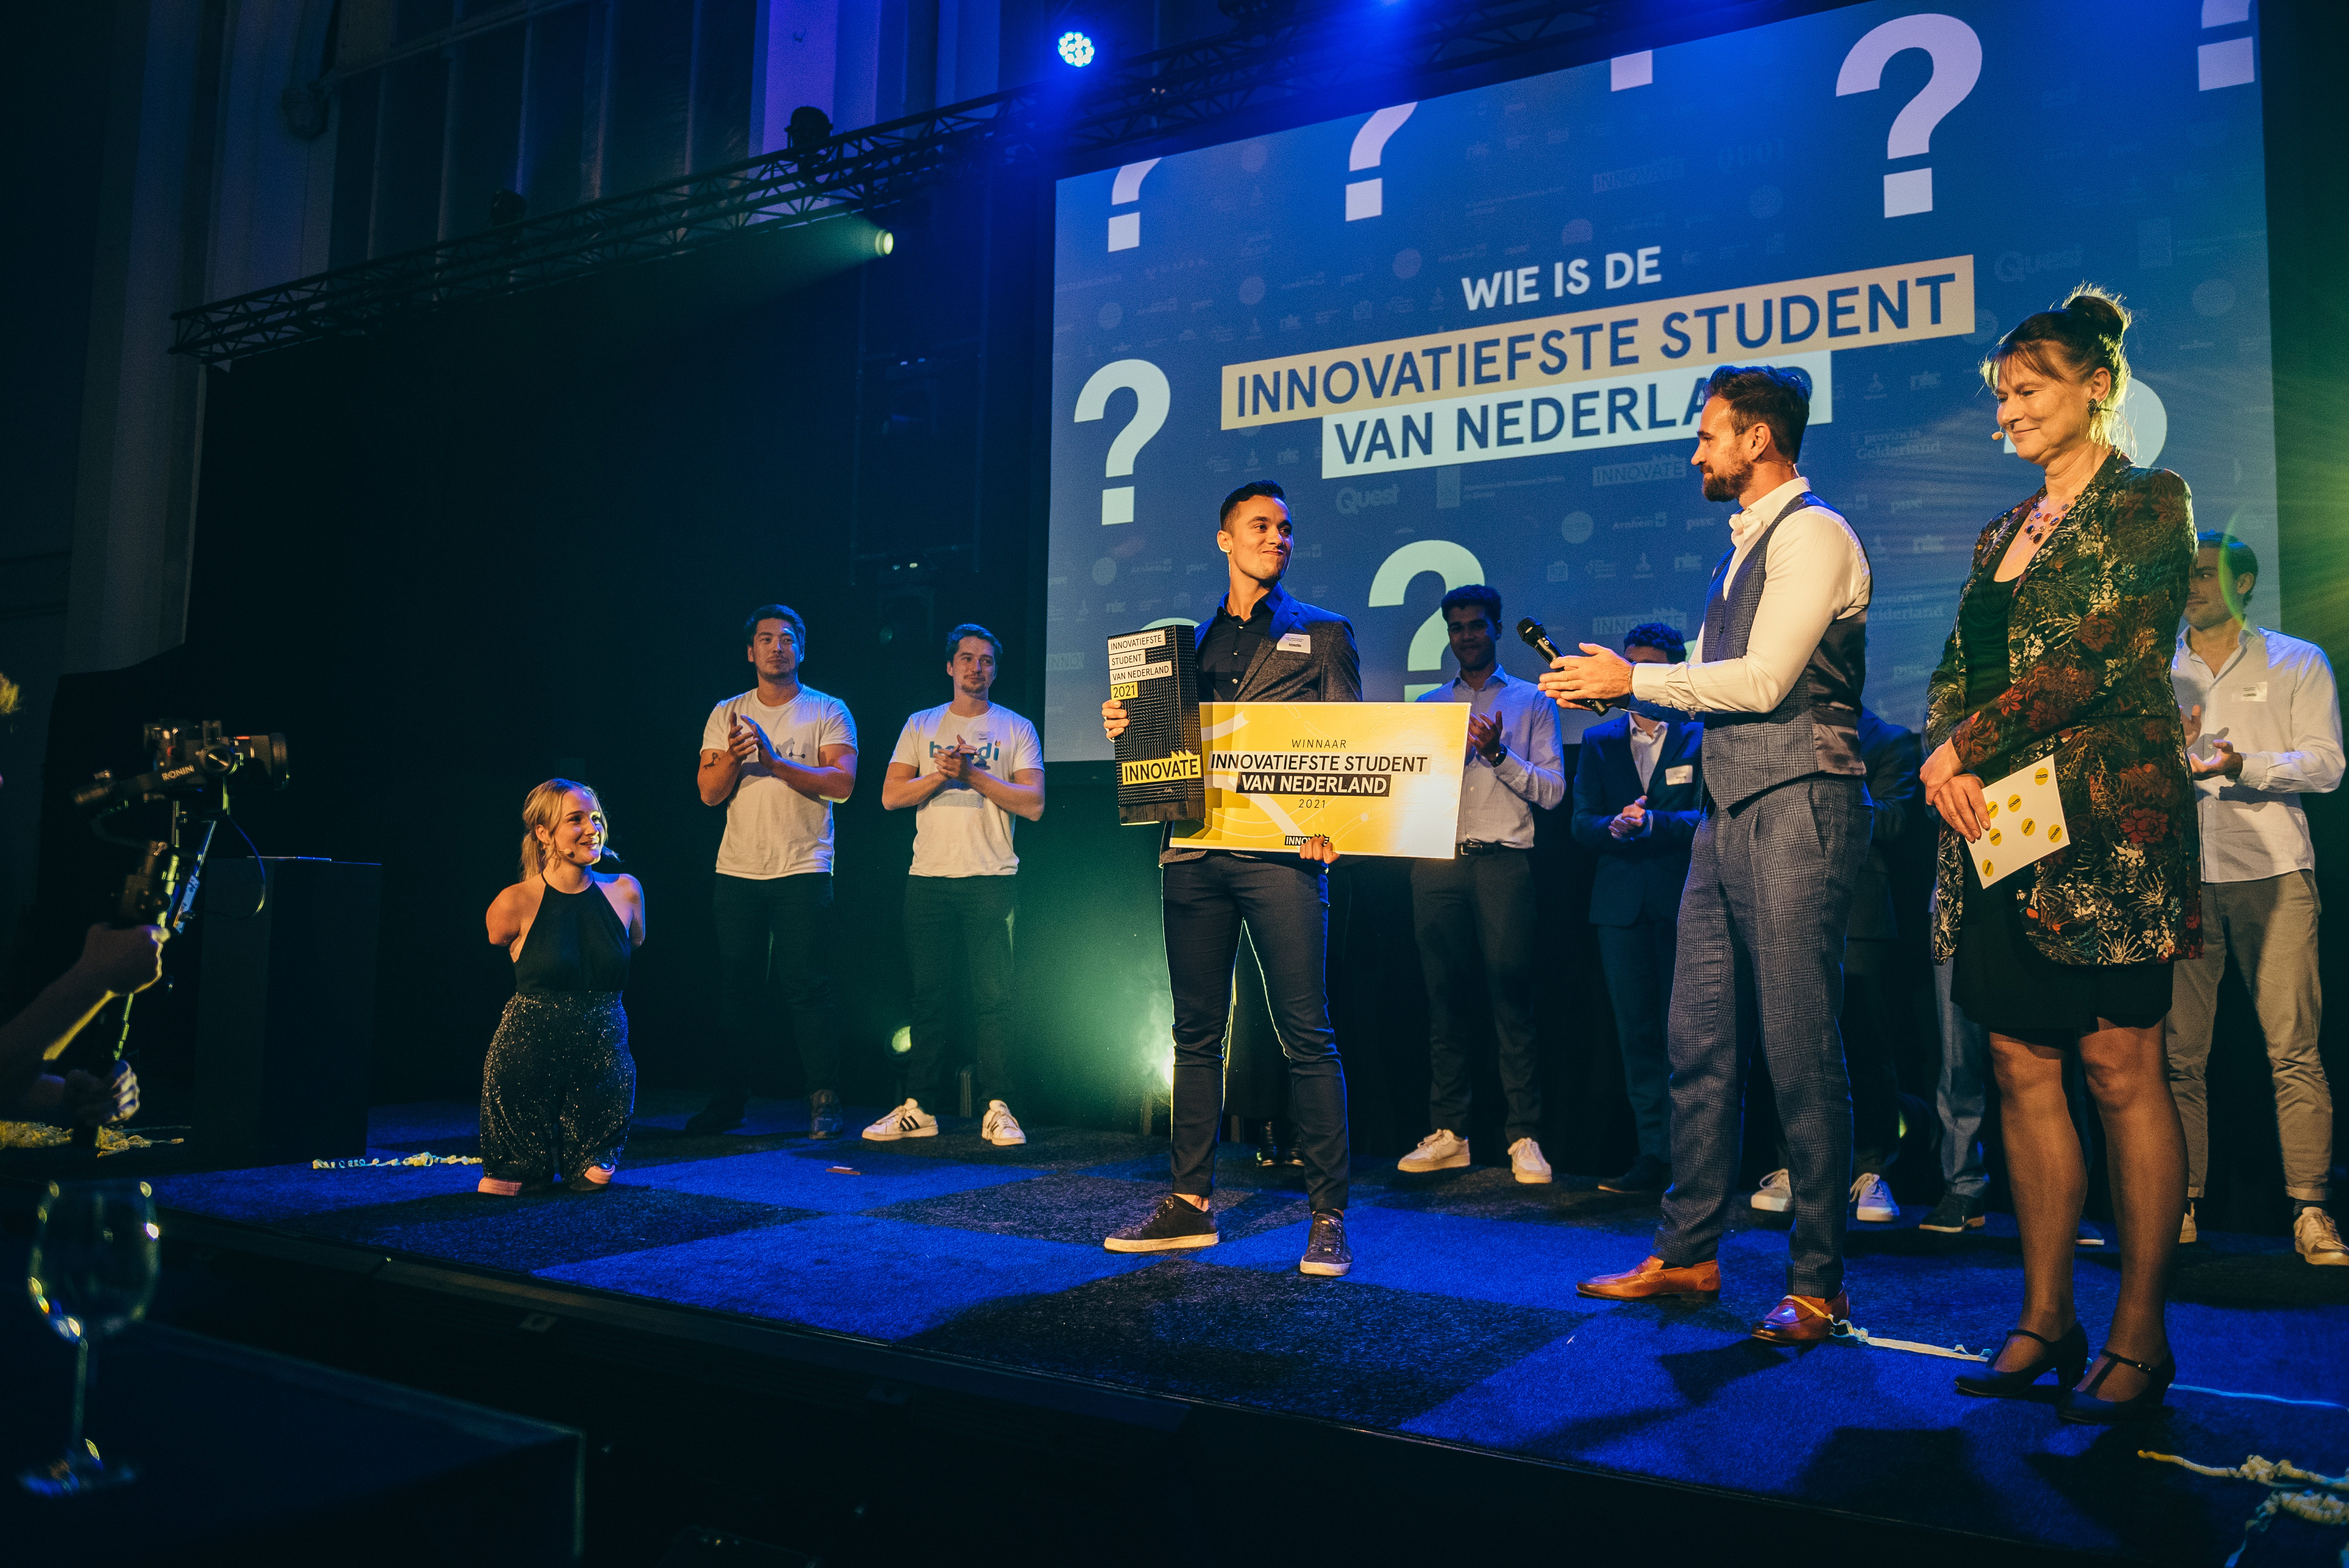 Jardo Stammeshaus was voted 'Most innovative student of the Netherlands'